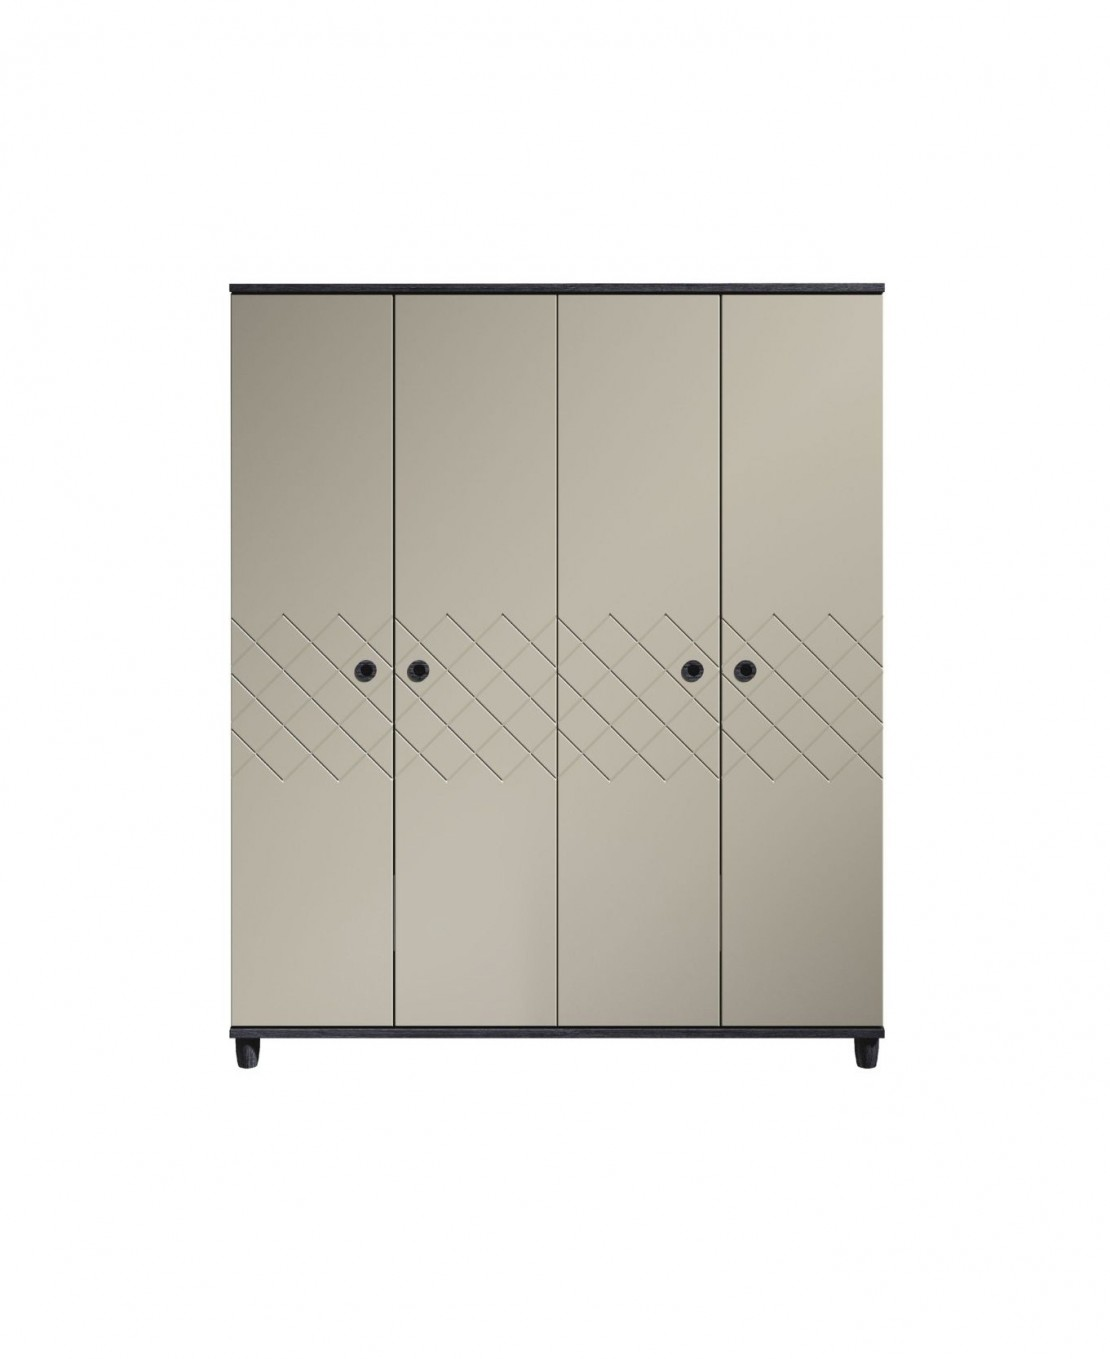 /_images/product-photos/kt-furniture-geo-4-door-robe-matt-grey-with-black-oak-carcase-a.jpg